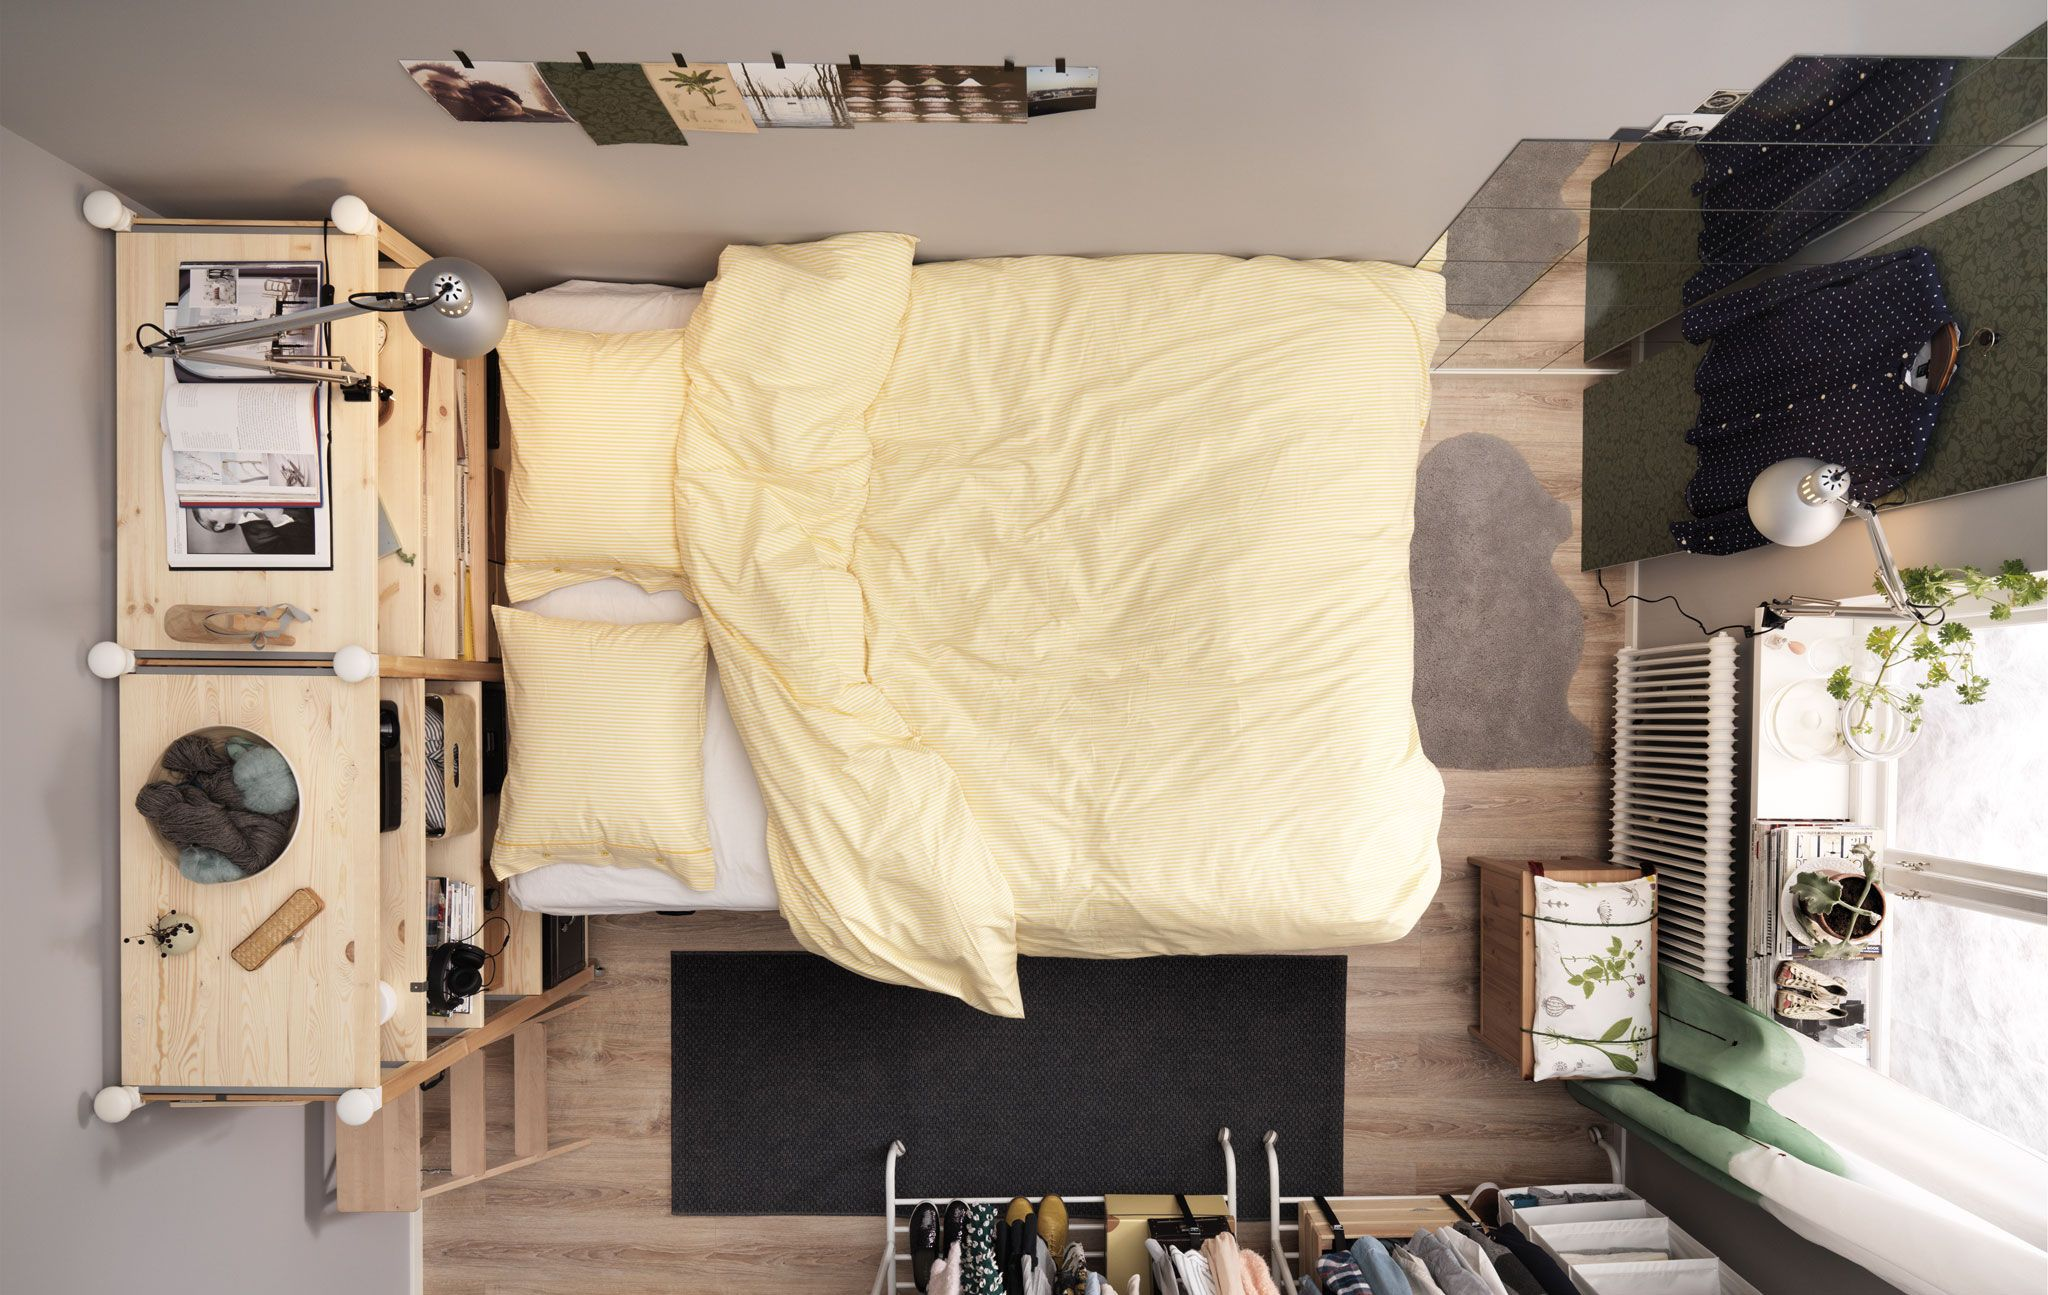 Square metre challenge part 1: bedroom for two | Bed | Pinterest ...